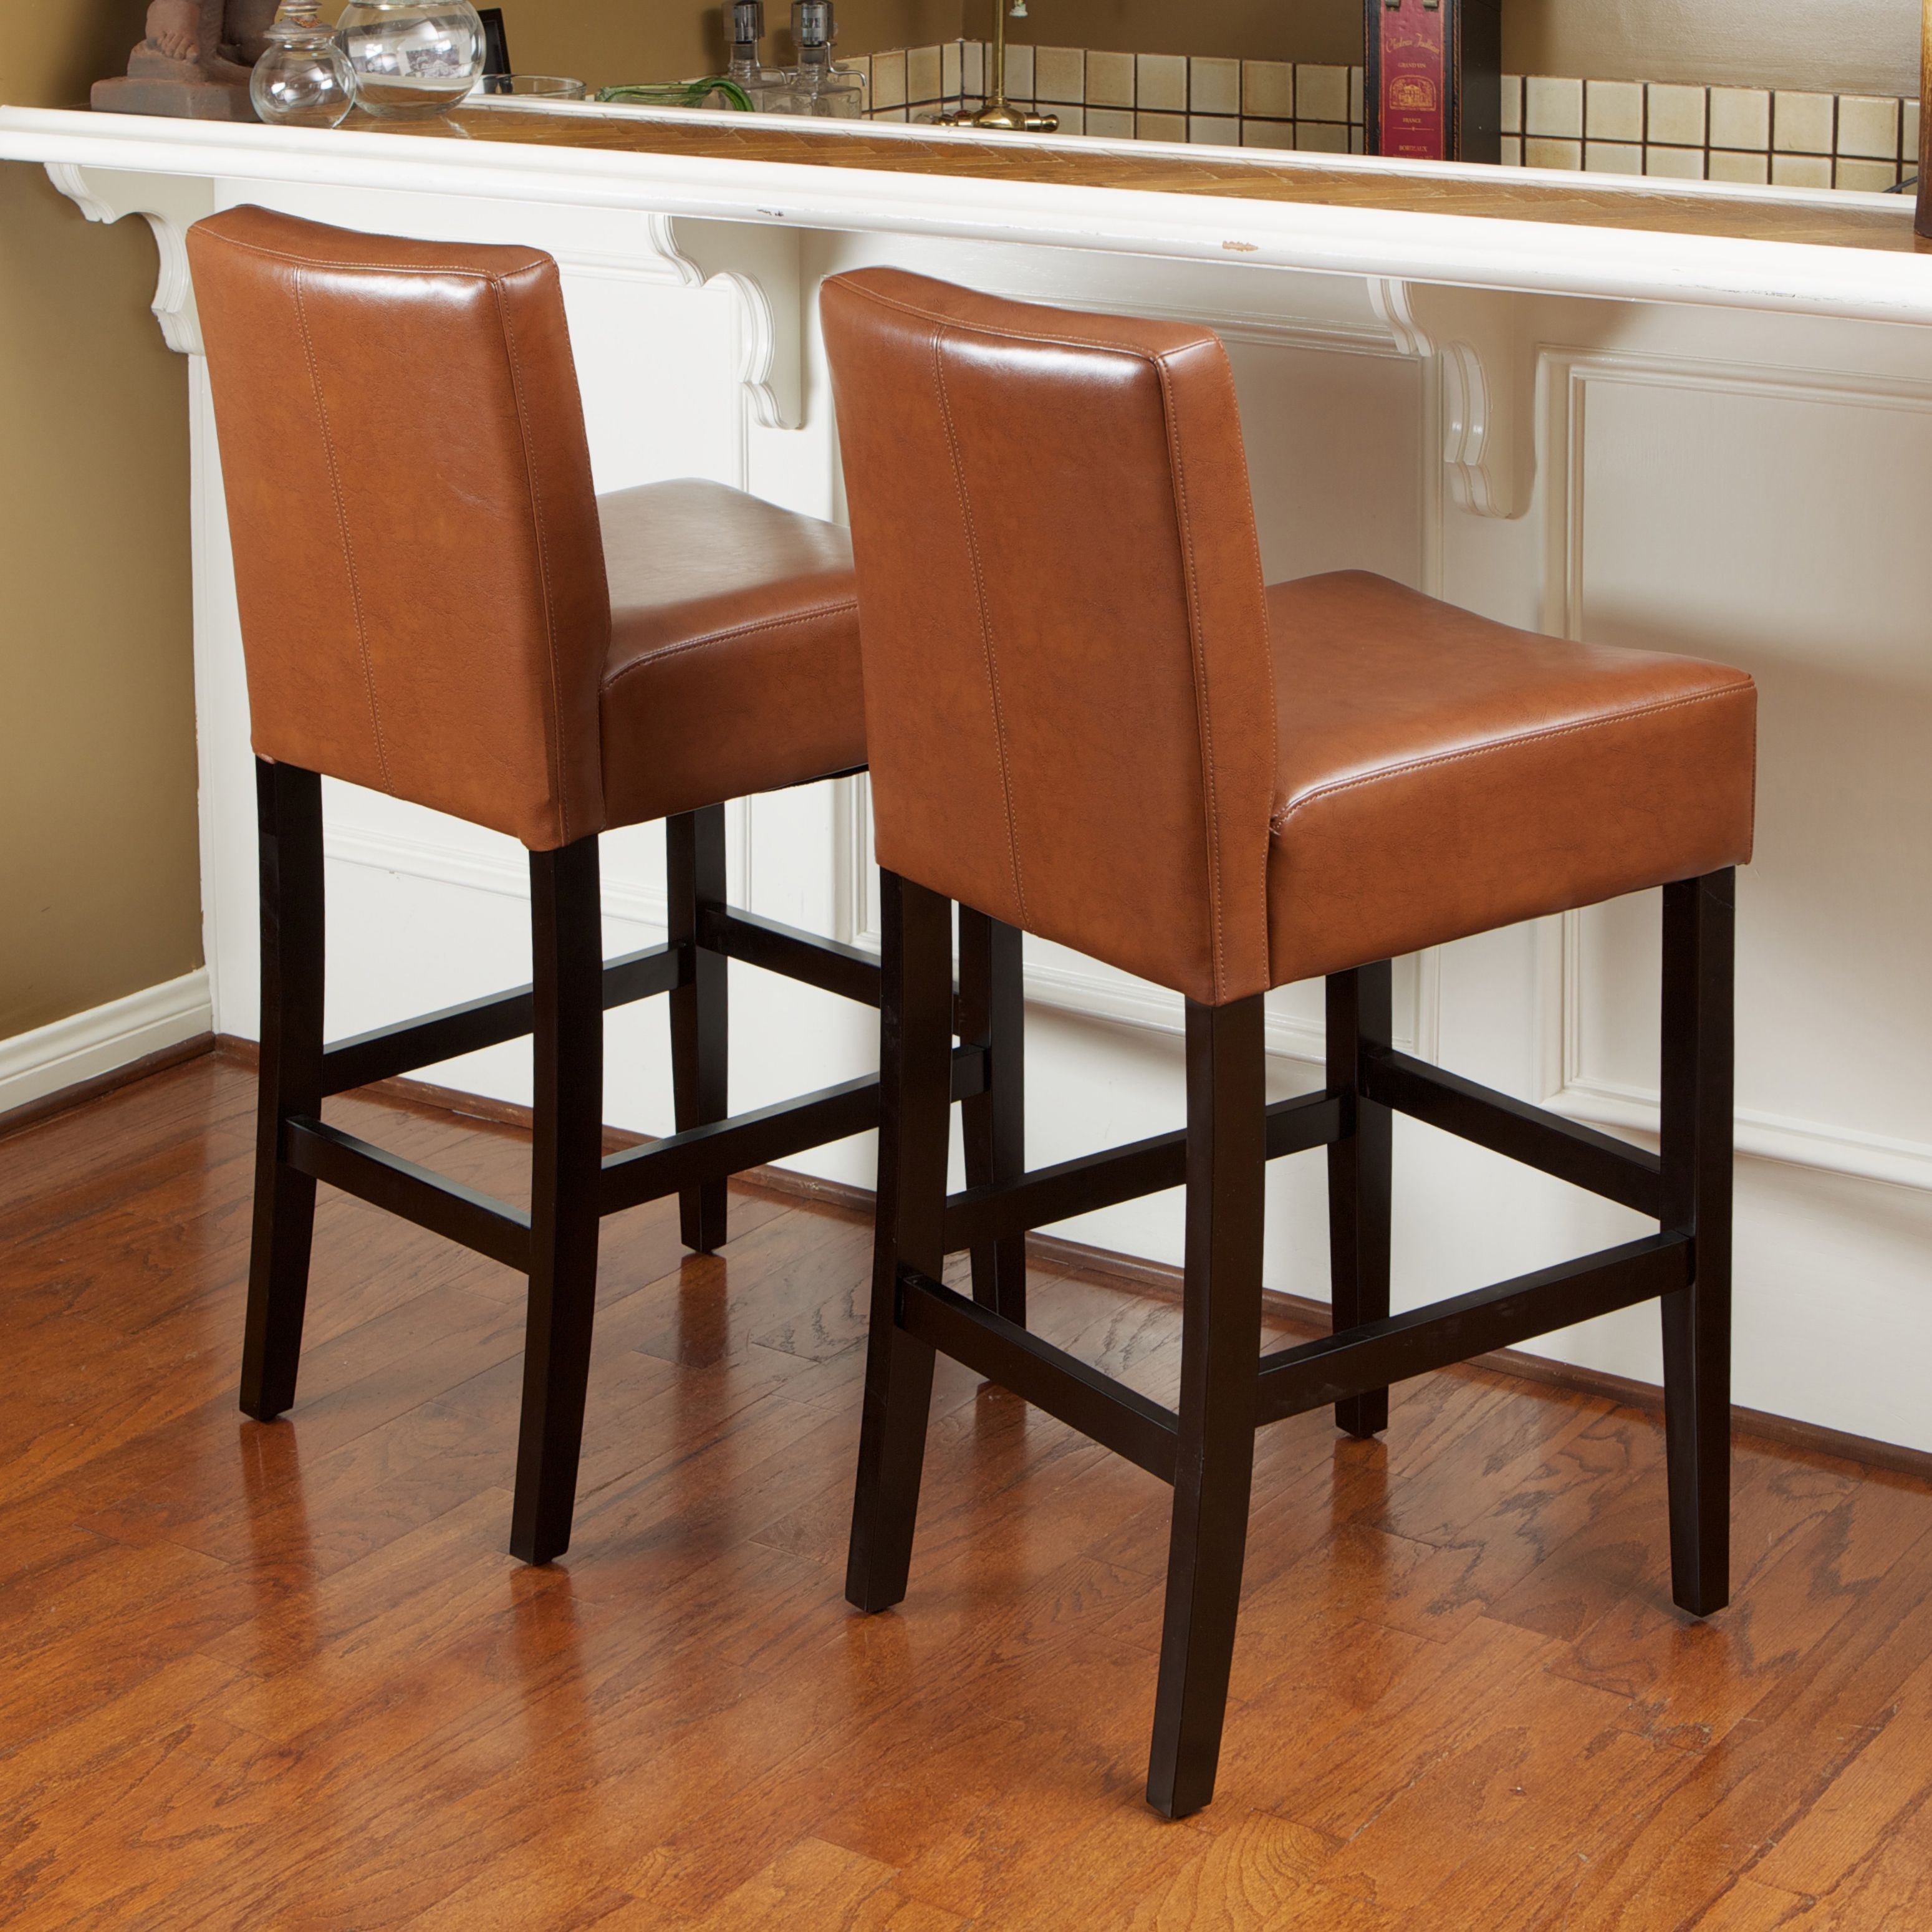 Lopez 26 Inch Hazelnut Leather Counterstools Set Of 2 By Christopher Knight Home Leather Counter Stools Bar Furniture Home Decor Sets